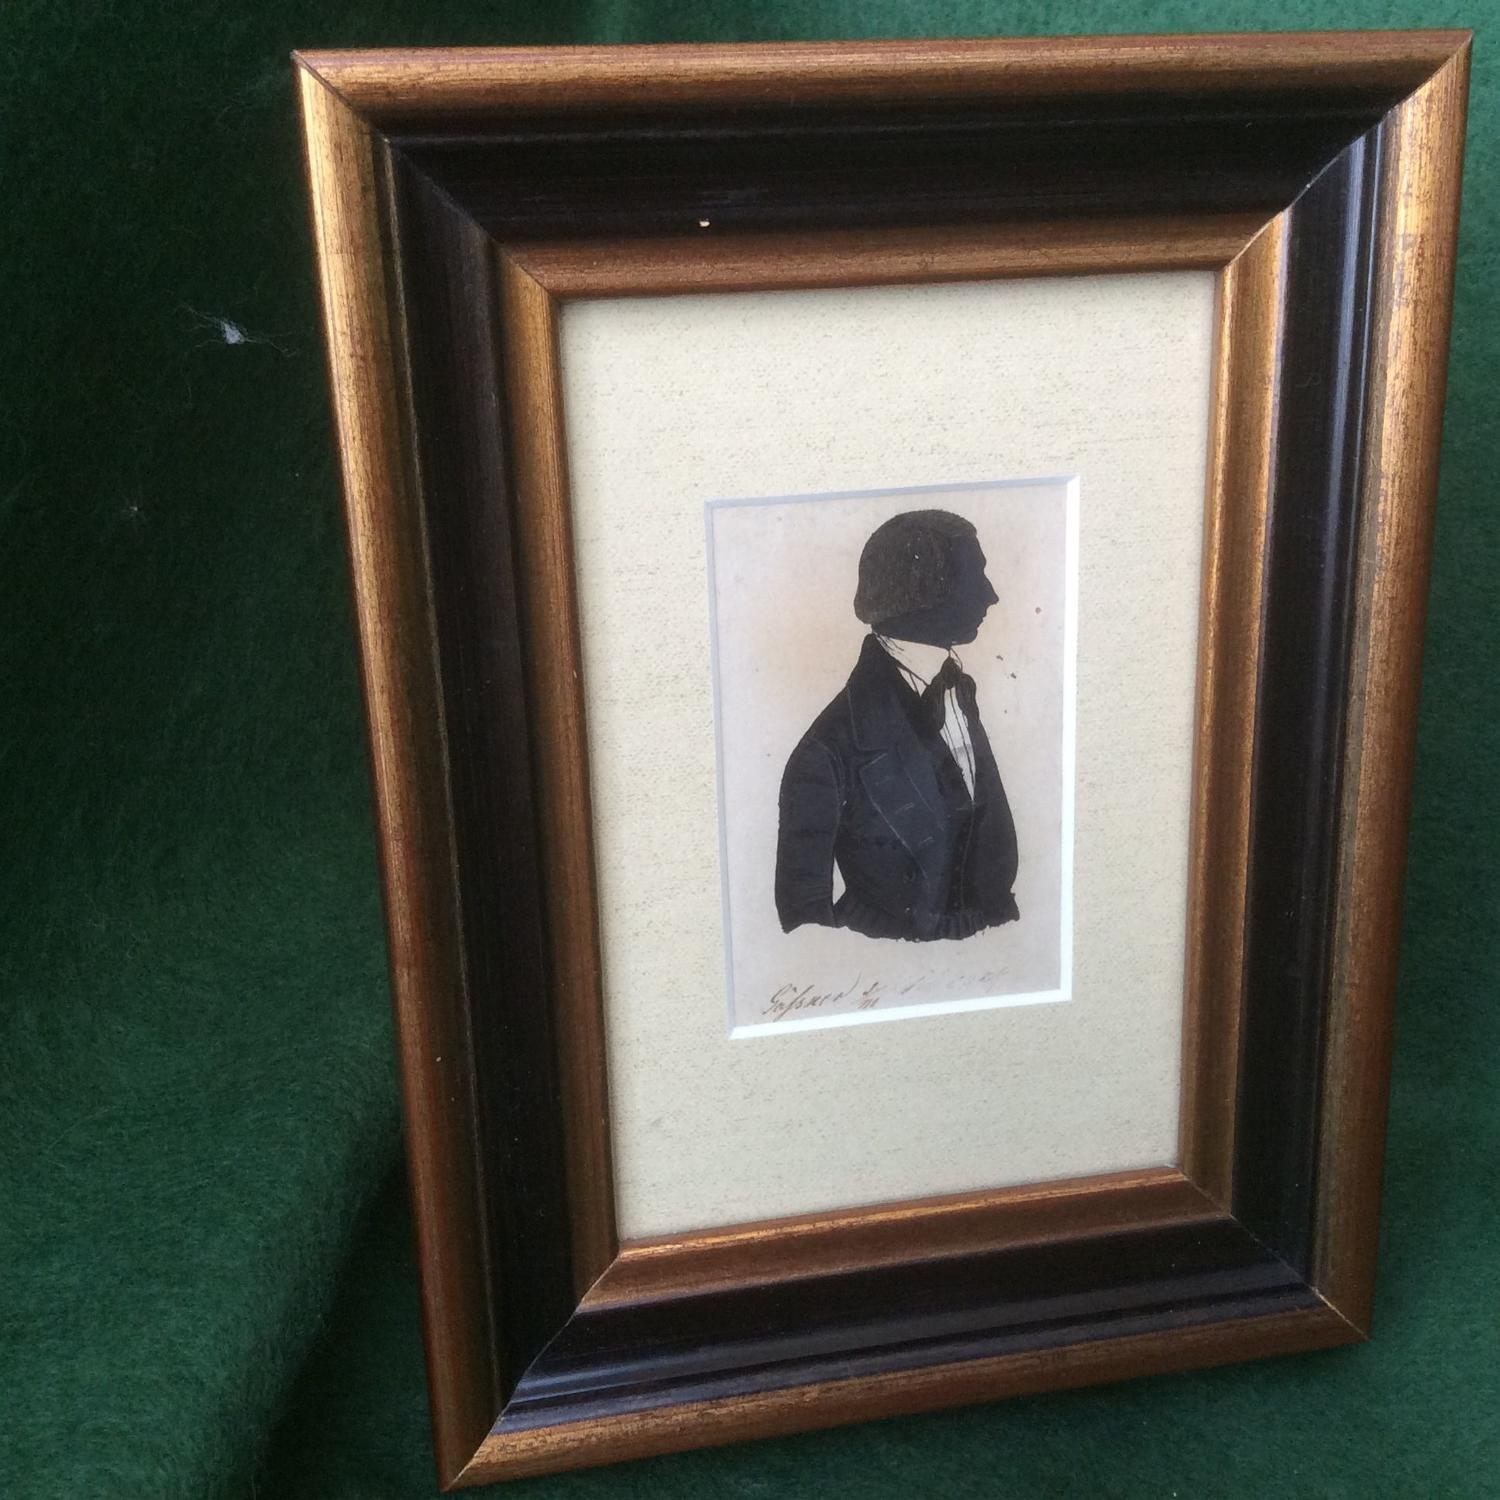 19th Century Silhouette of a gentleman, signed.